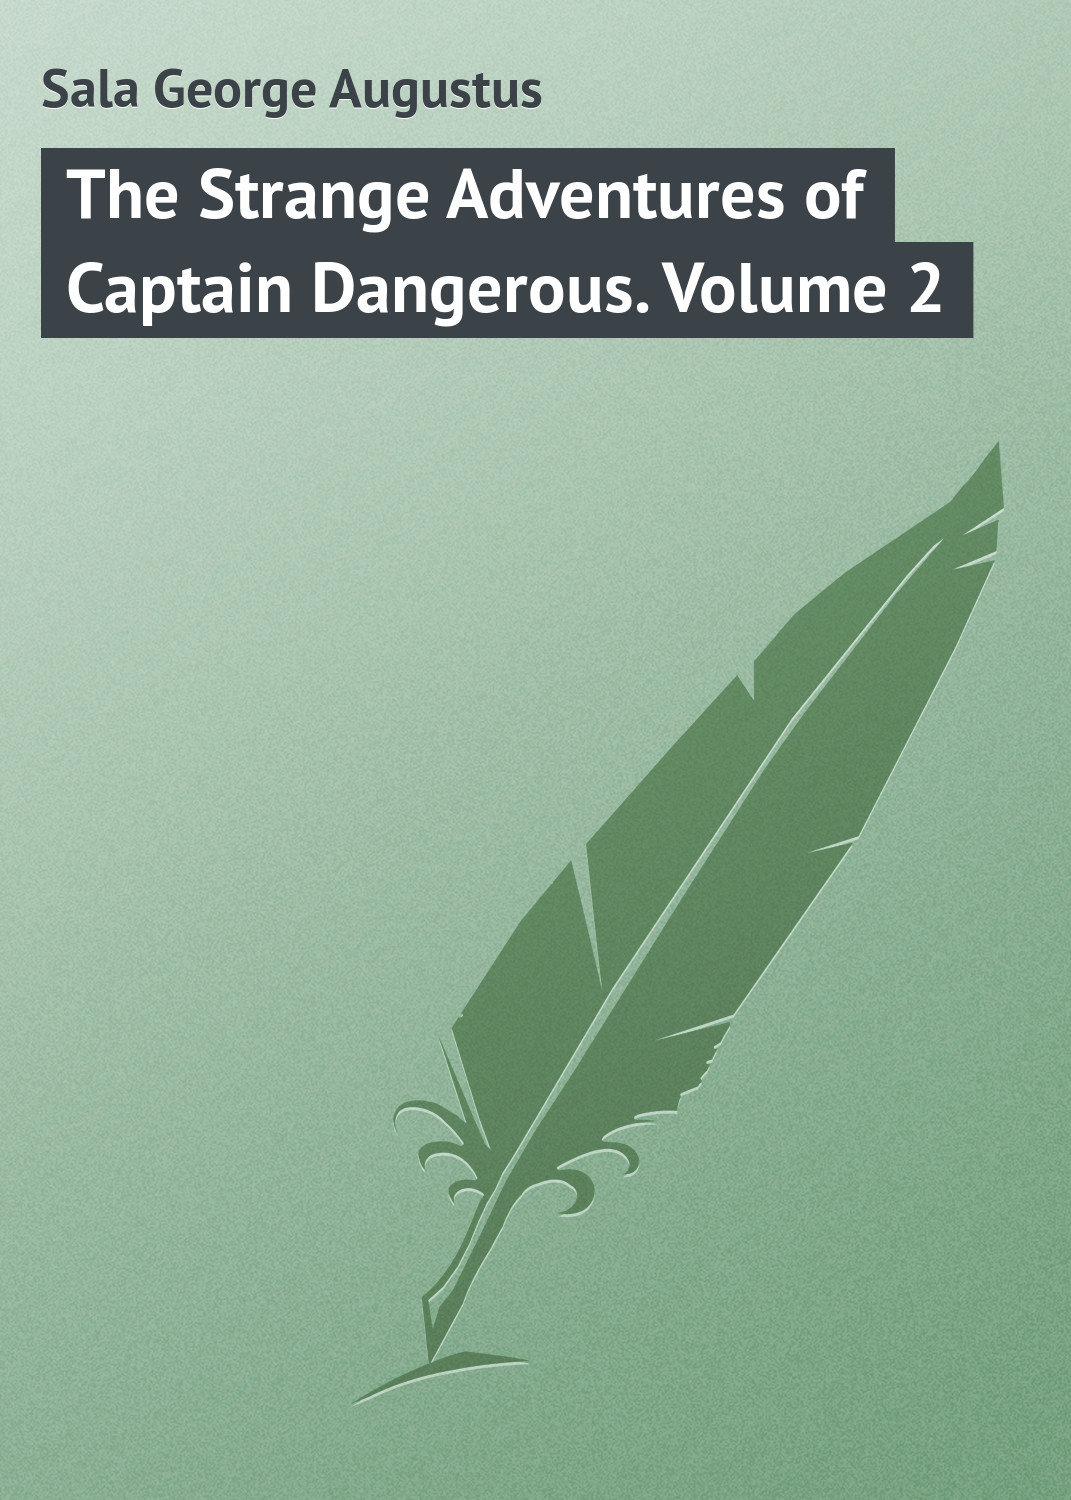 Sala George Augustus The Strange Adventures of Captain Dangerous. Volume 2